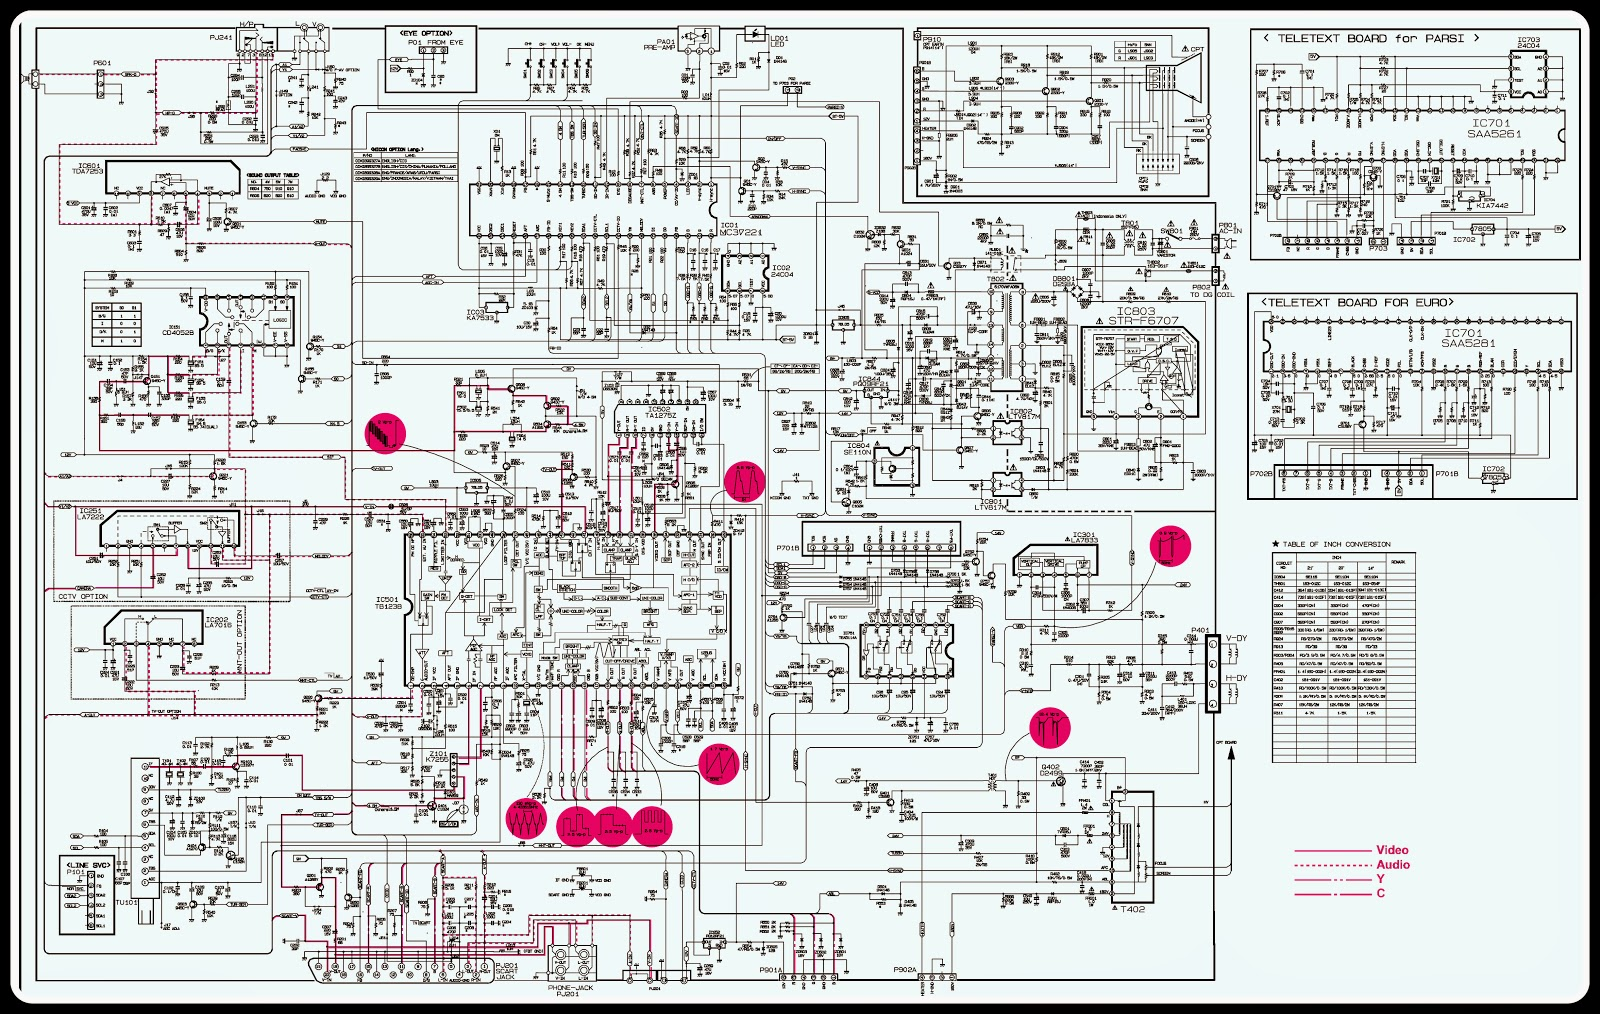 lg tv schematic diagrams wiring diagram operations lg tv circuit diagram including power supply schematic diagram [ 1600 x 1014 Pixel ]